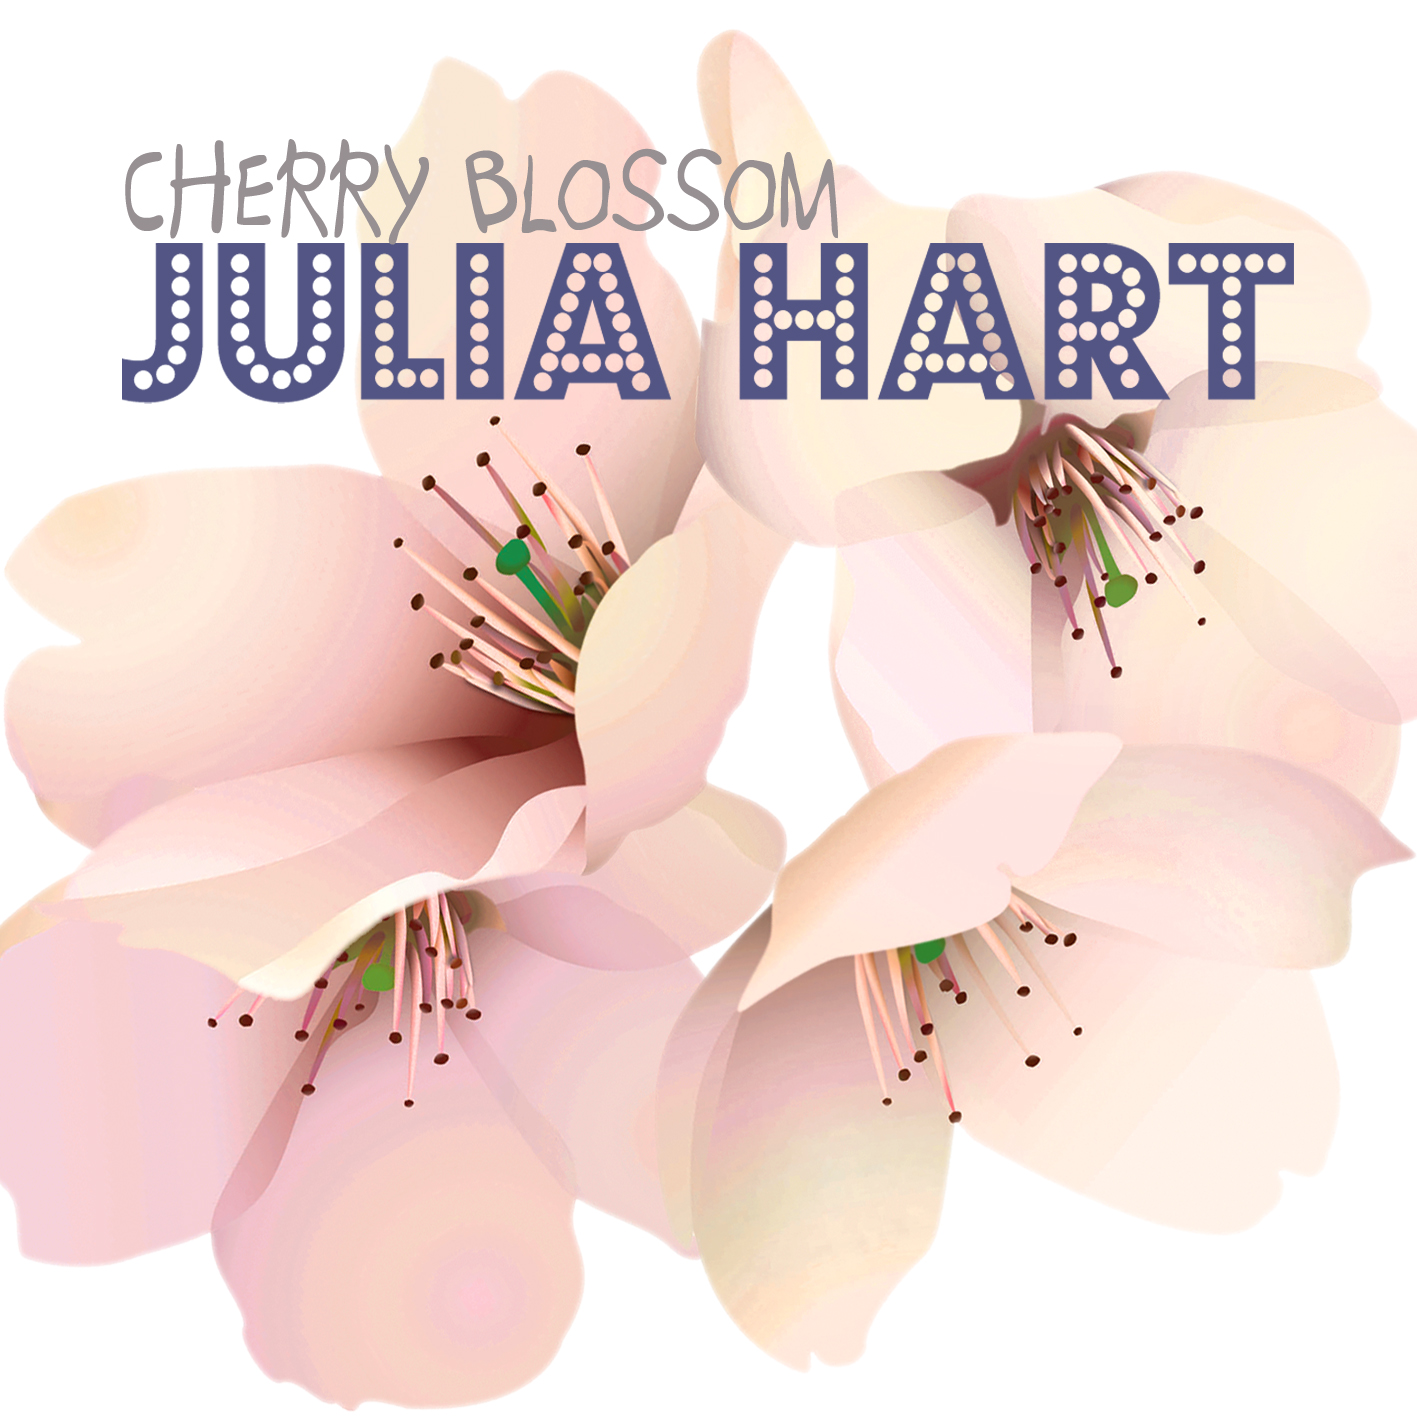 Julia Hart Release Reboot Digital Single for Spring